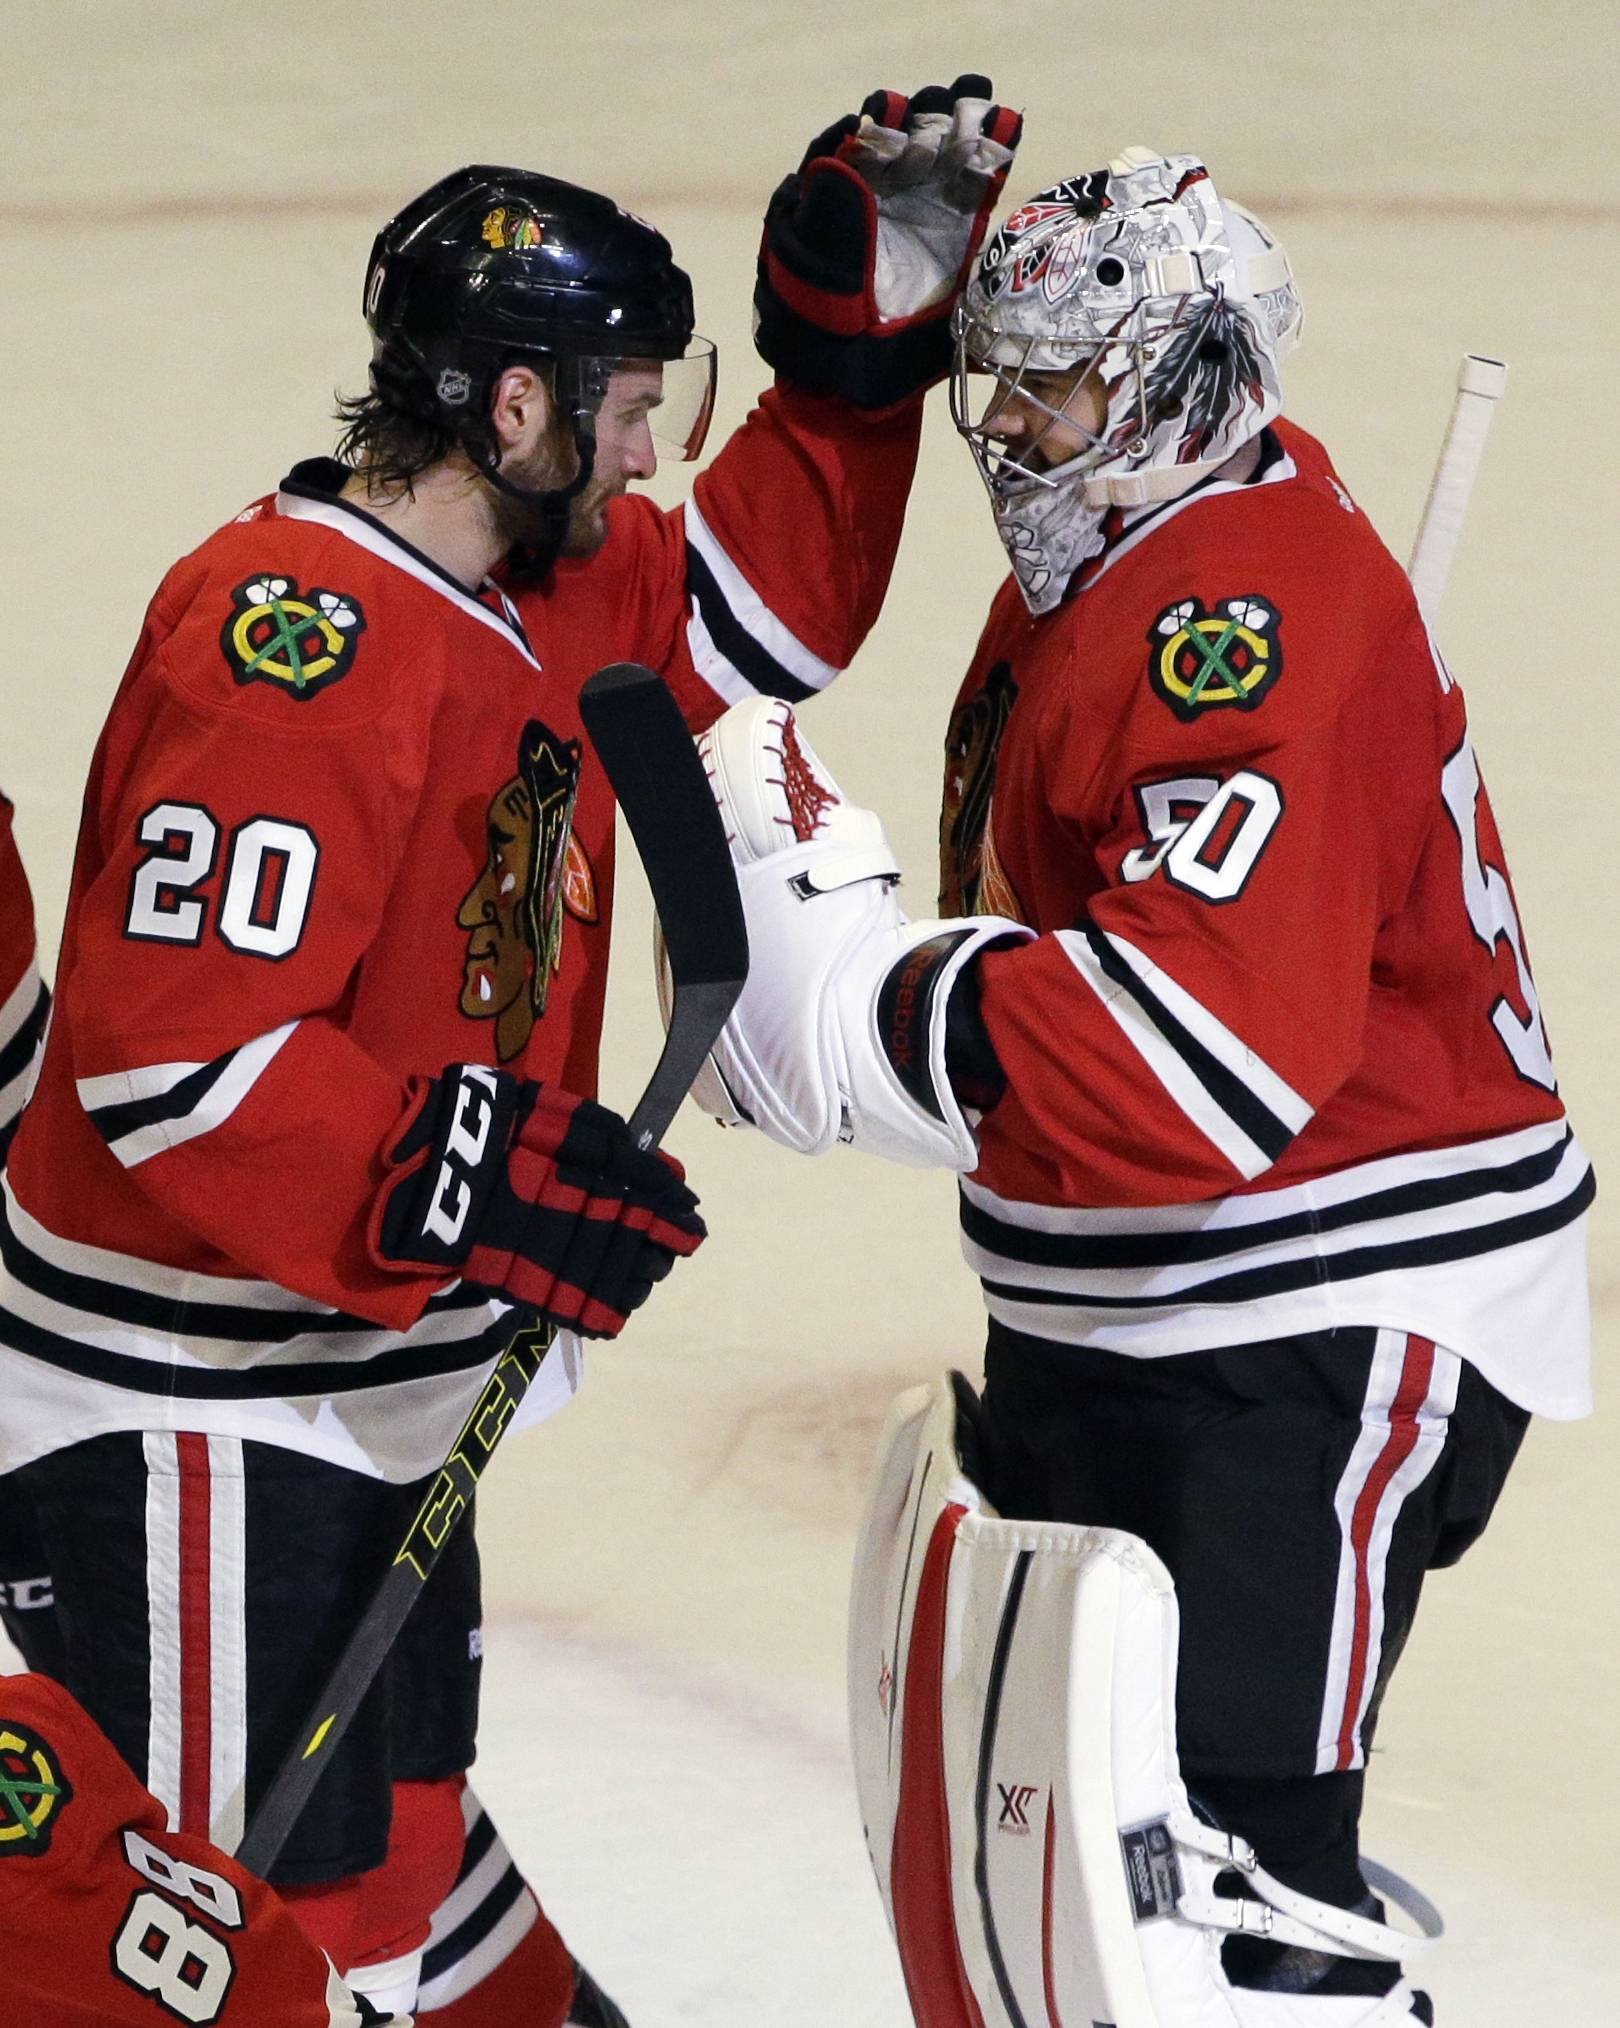 Blackhawks goalie Corey Crawford, right, celebrates with Brandon Saad after Sunday's Game 2 victory over the Wild at the United Center.